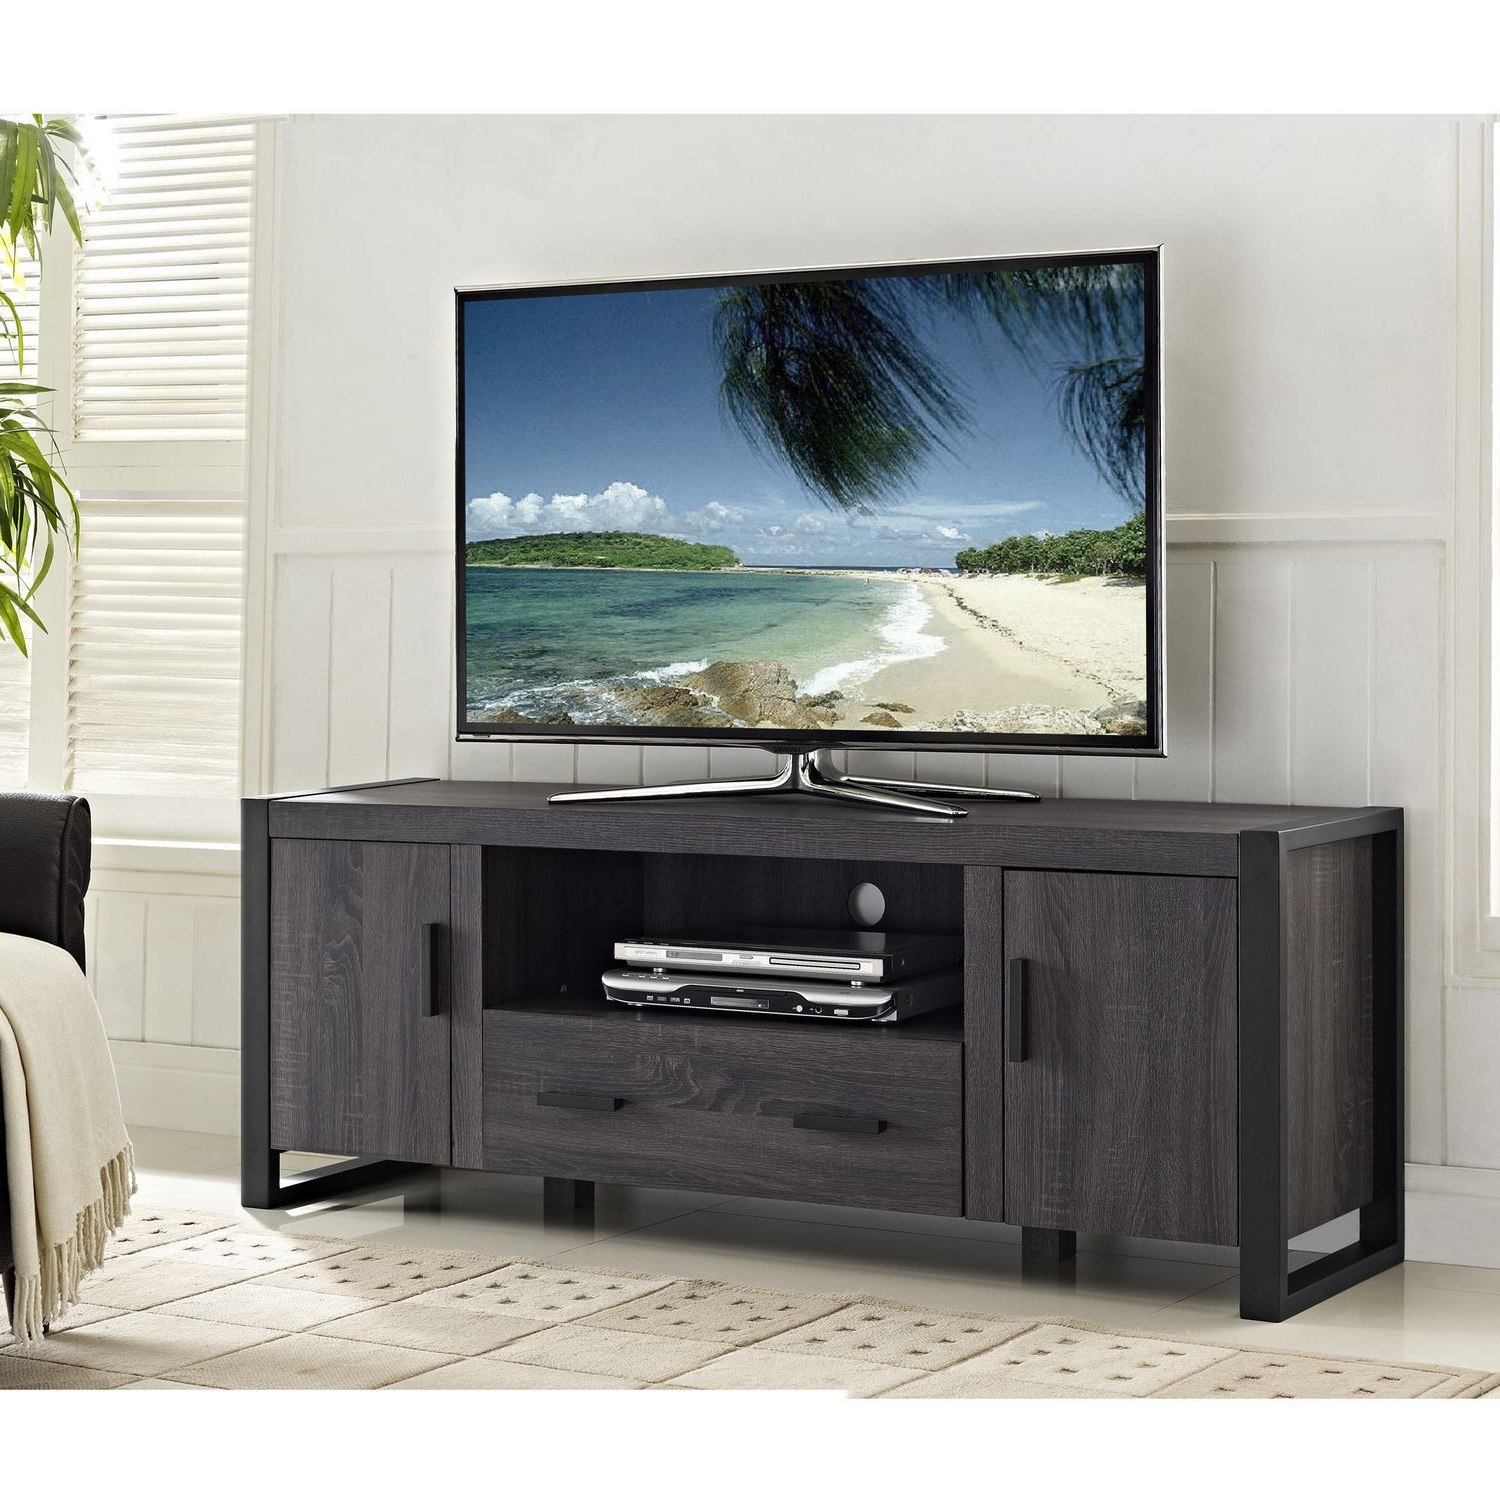 "Latest Modern Tv Stands For 60 Inch Tvs With We Furniture 60"" Grey Wood Tv Stand Console (View 6 of 20)"